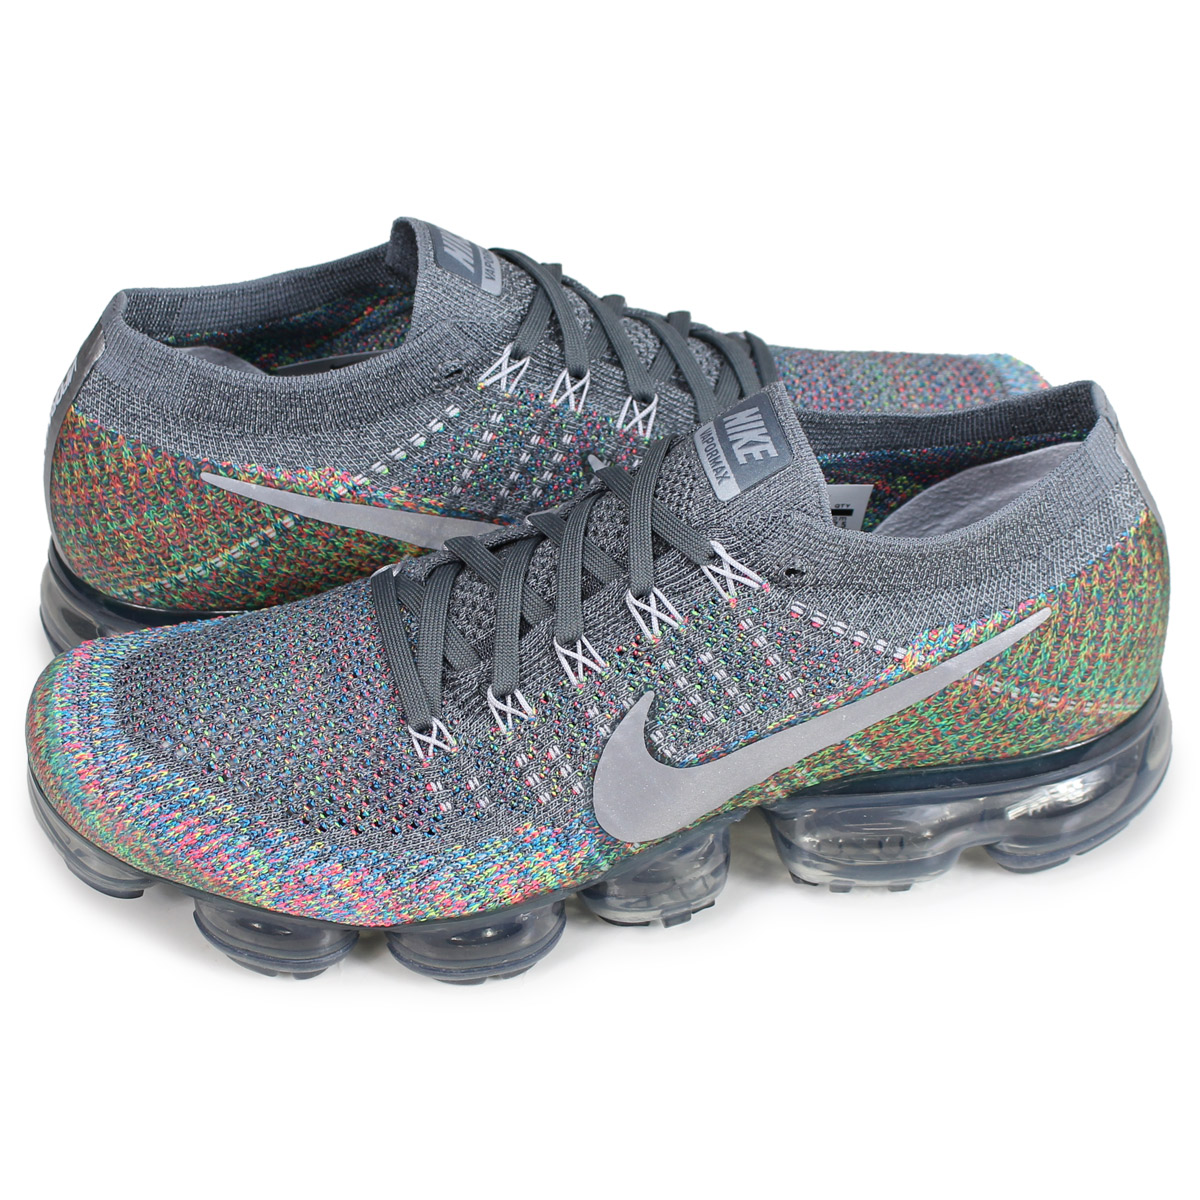 63d0a385668f9 Whats up Sports  Nike NIKE air vapor max fried food knit sneakers ...